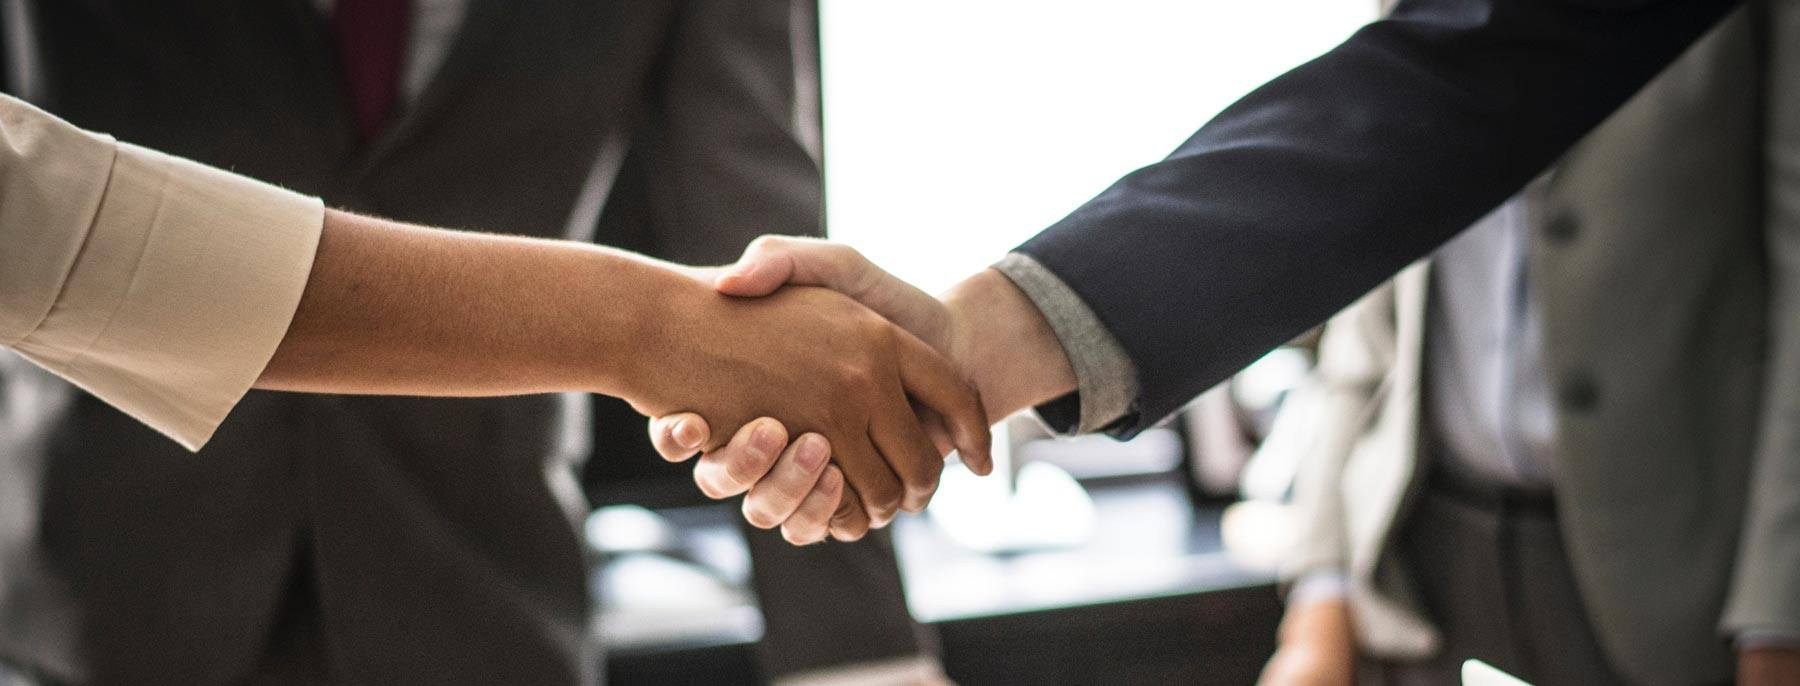 a business man and woman shaking hands in agreement